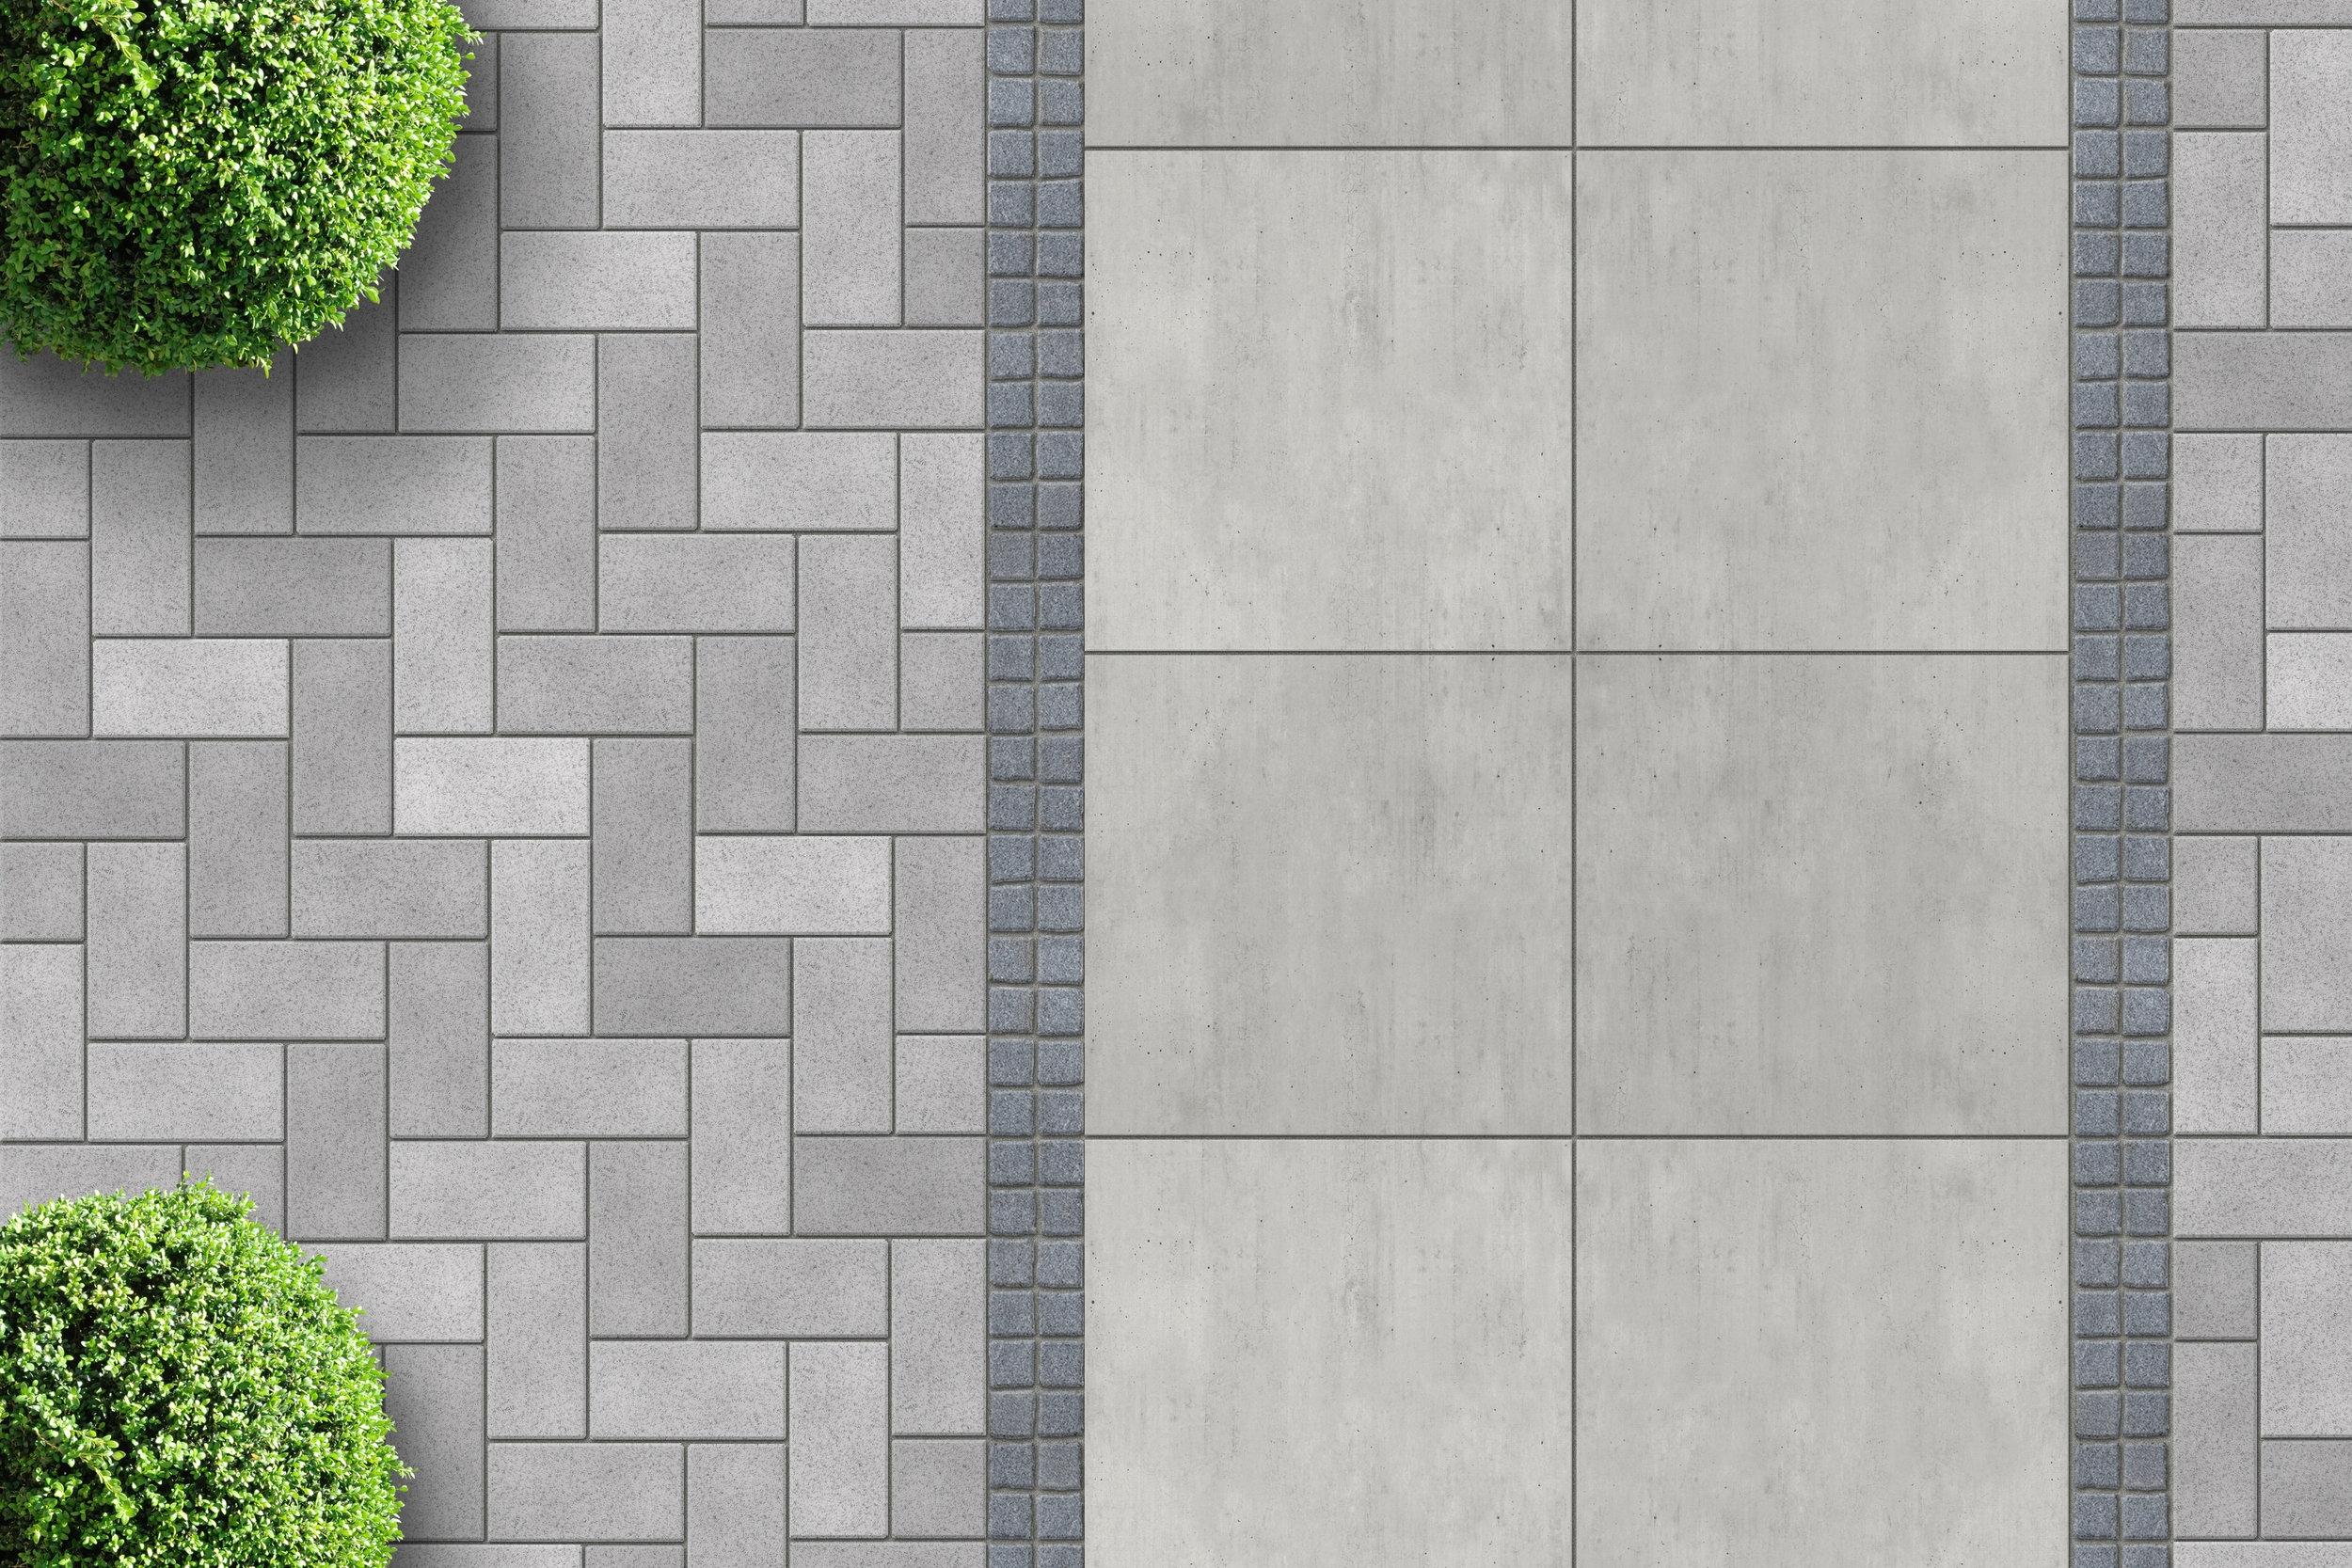 Paving Services - Driveways, Patios & Courtyards, Paving and Brickwork.